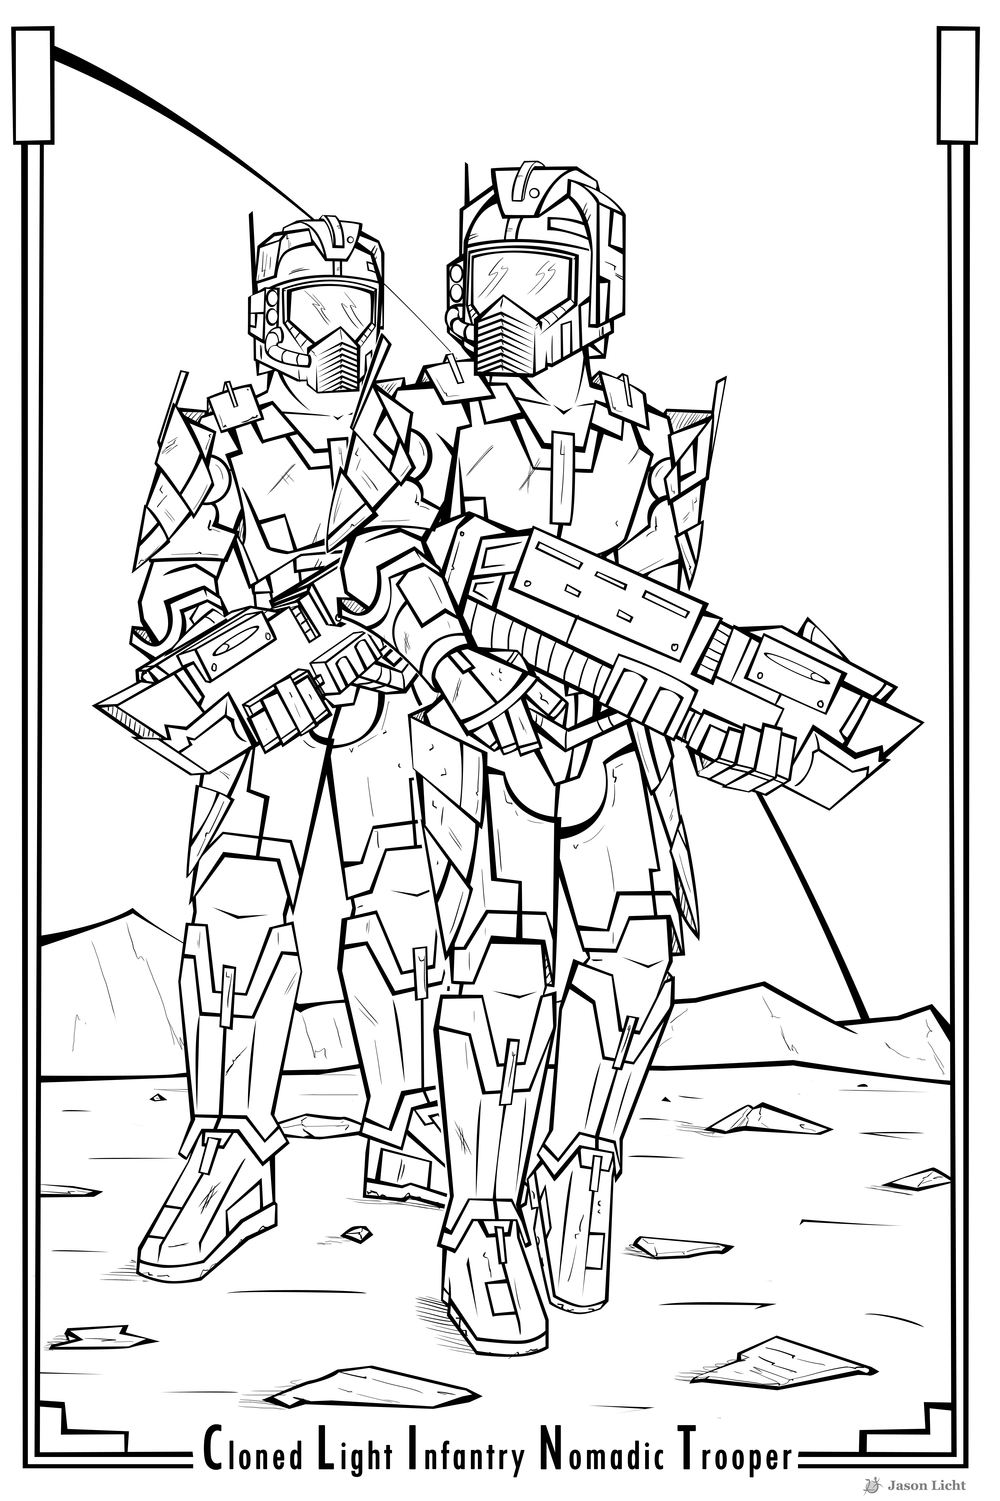 C.L.I.N.T.s 4159 and 4158. Even behind those helmet plates, their oh so punchable faces are visible. Illustration by rebel artist  Jason Licht .